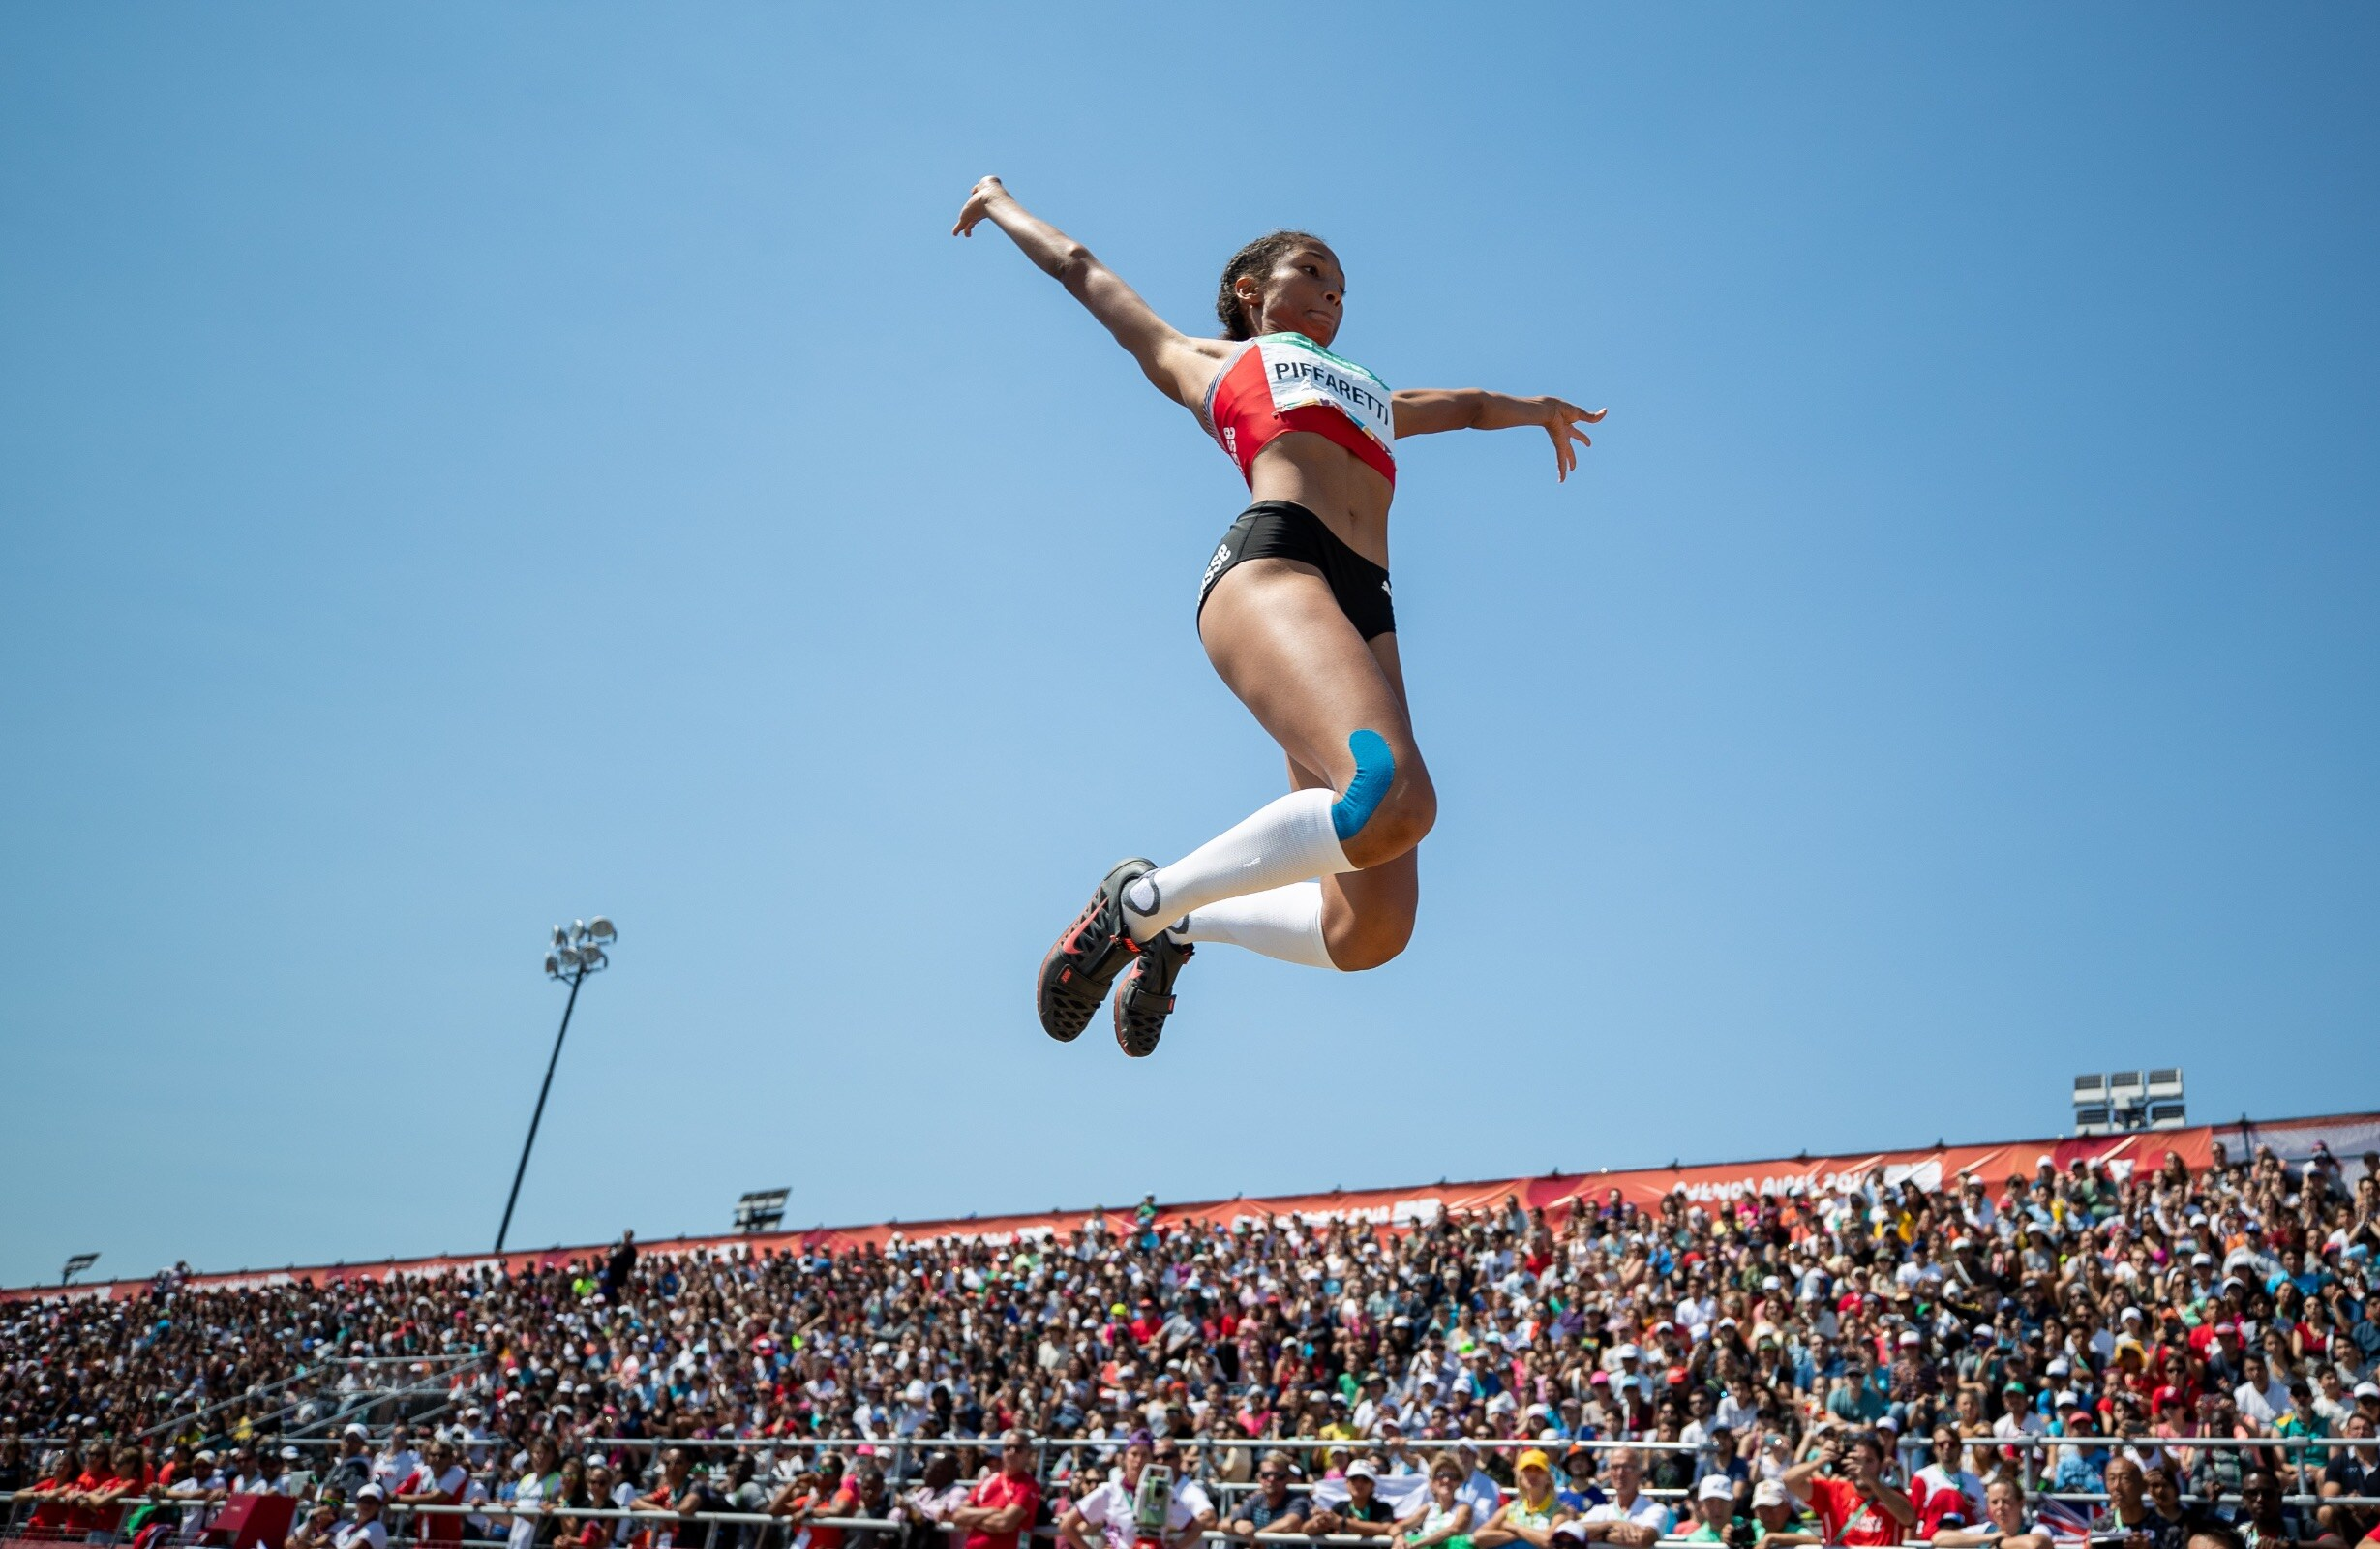 Buenos Aires 2018 - Athletics - Women's Long Jump